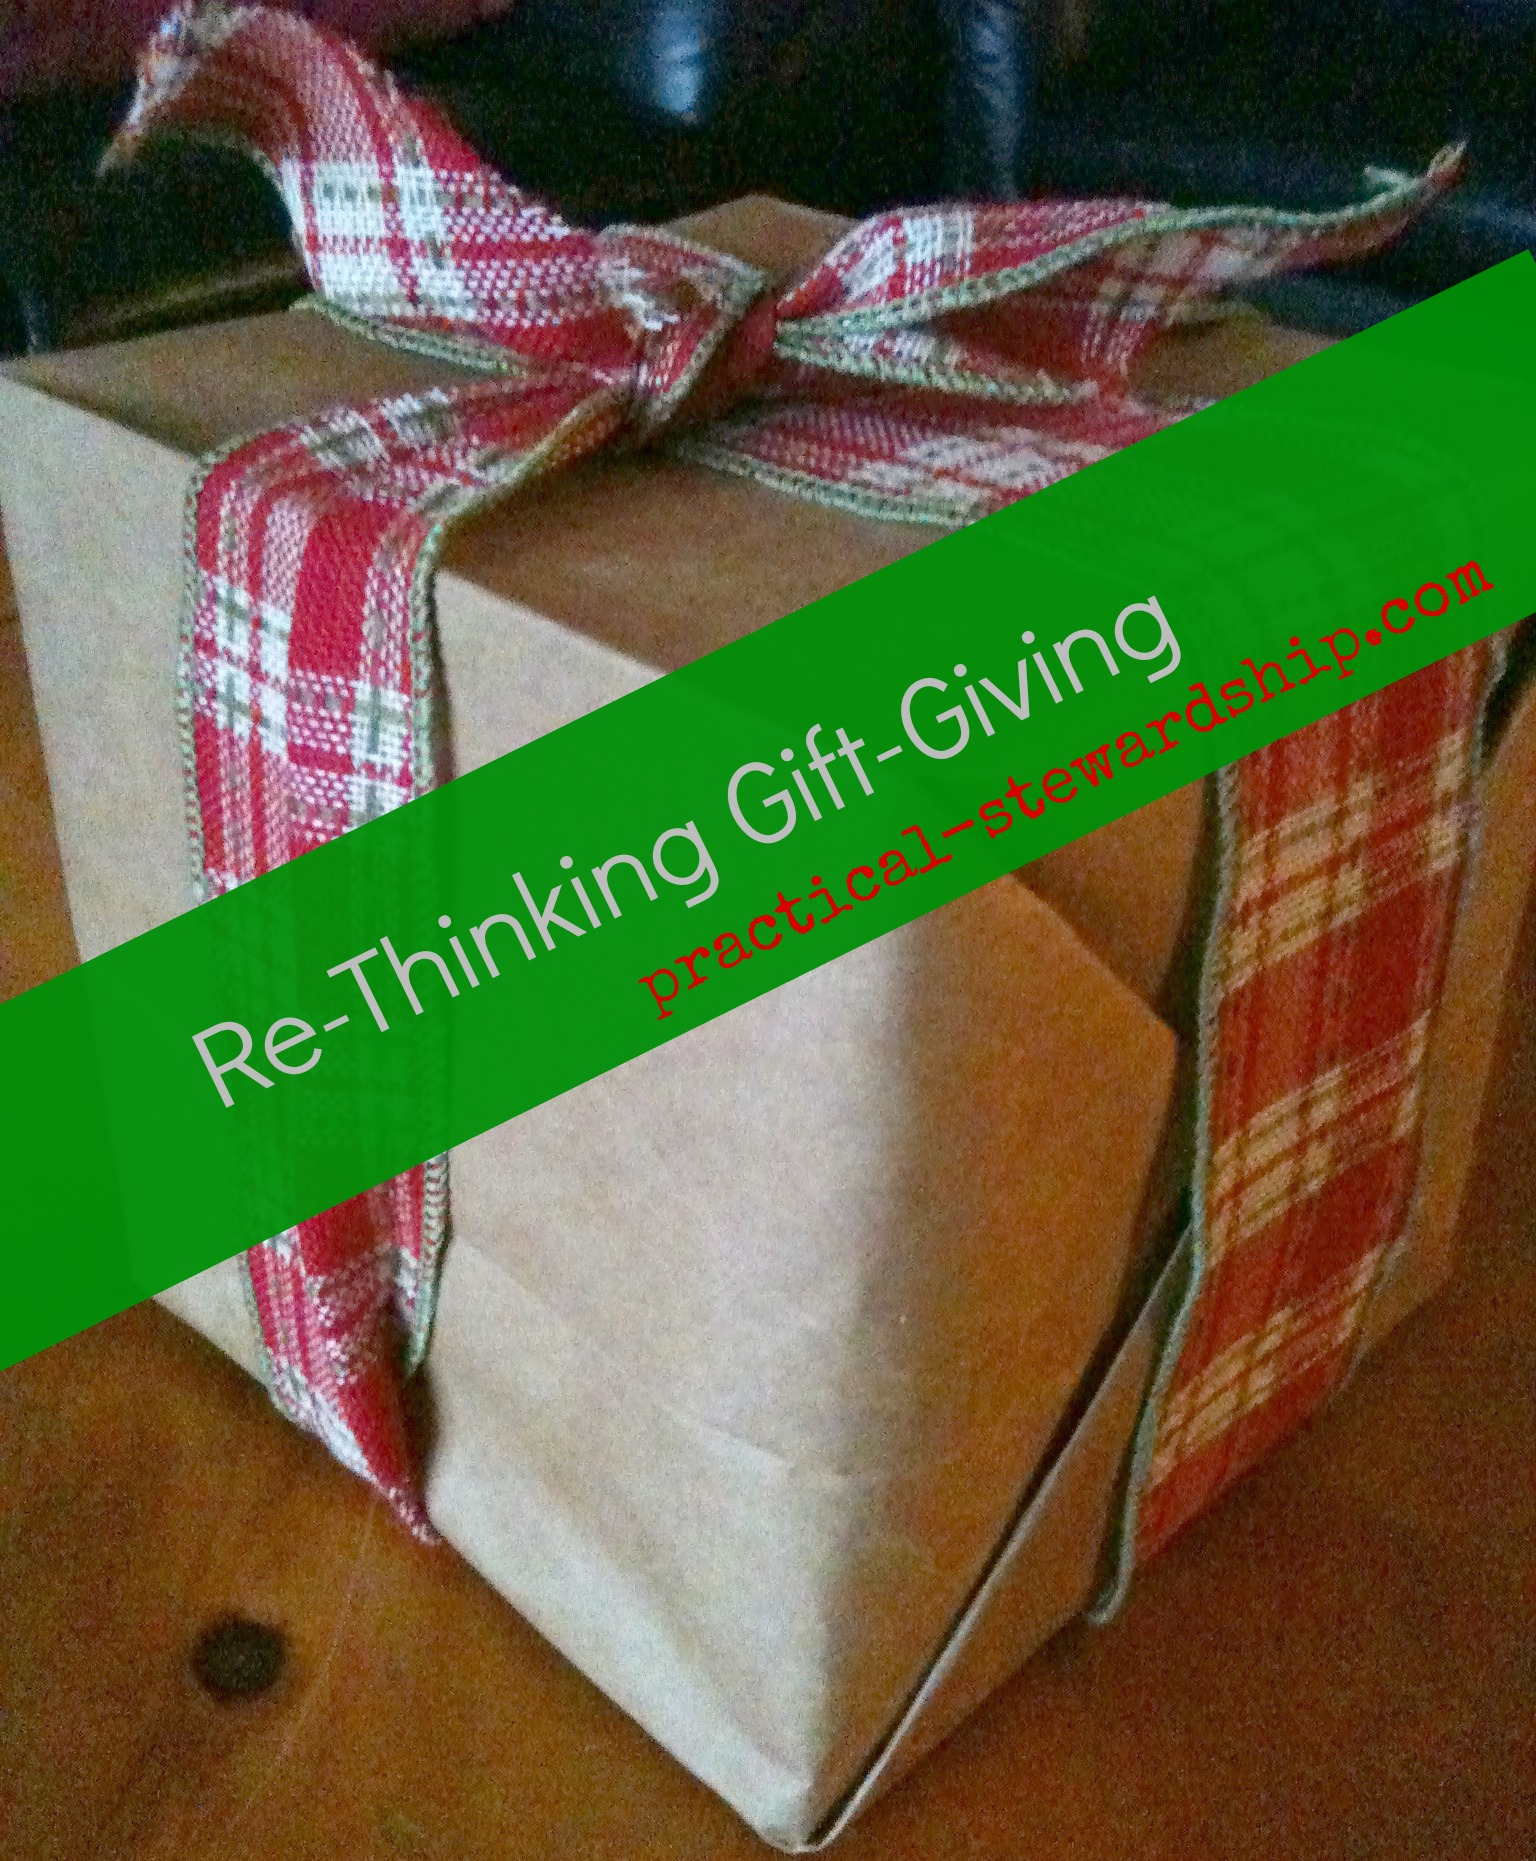 Re-thinking Gift-Giving: Part One, Kids & Gift-Giving